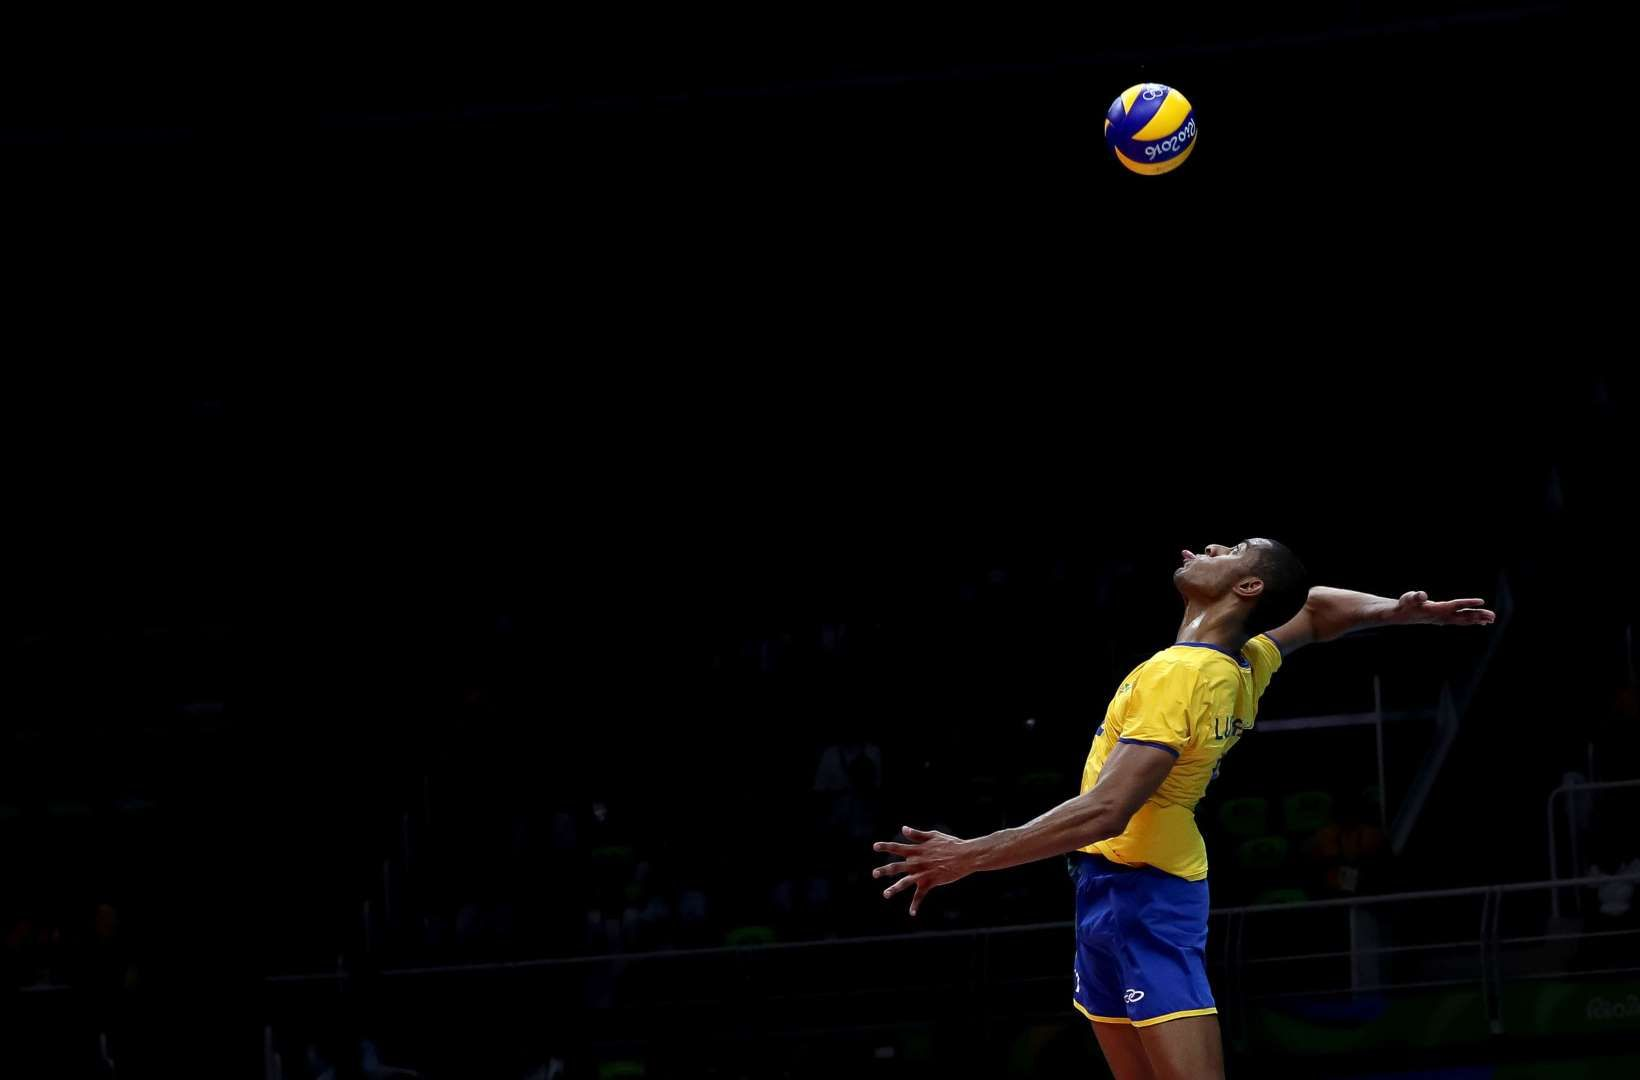 Spiked Ricardo Lucarelli Of Brazil Spikes The Ball During The Men S Qualifying Volleyball Match Between Brazil A Summer Olympics 2016 Summer Olympics Olympics